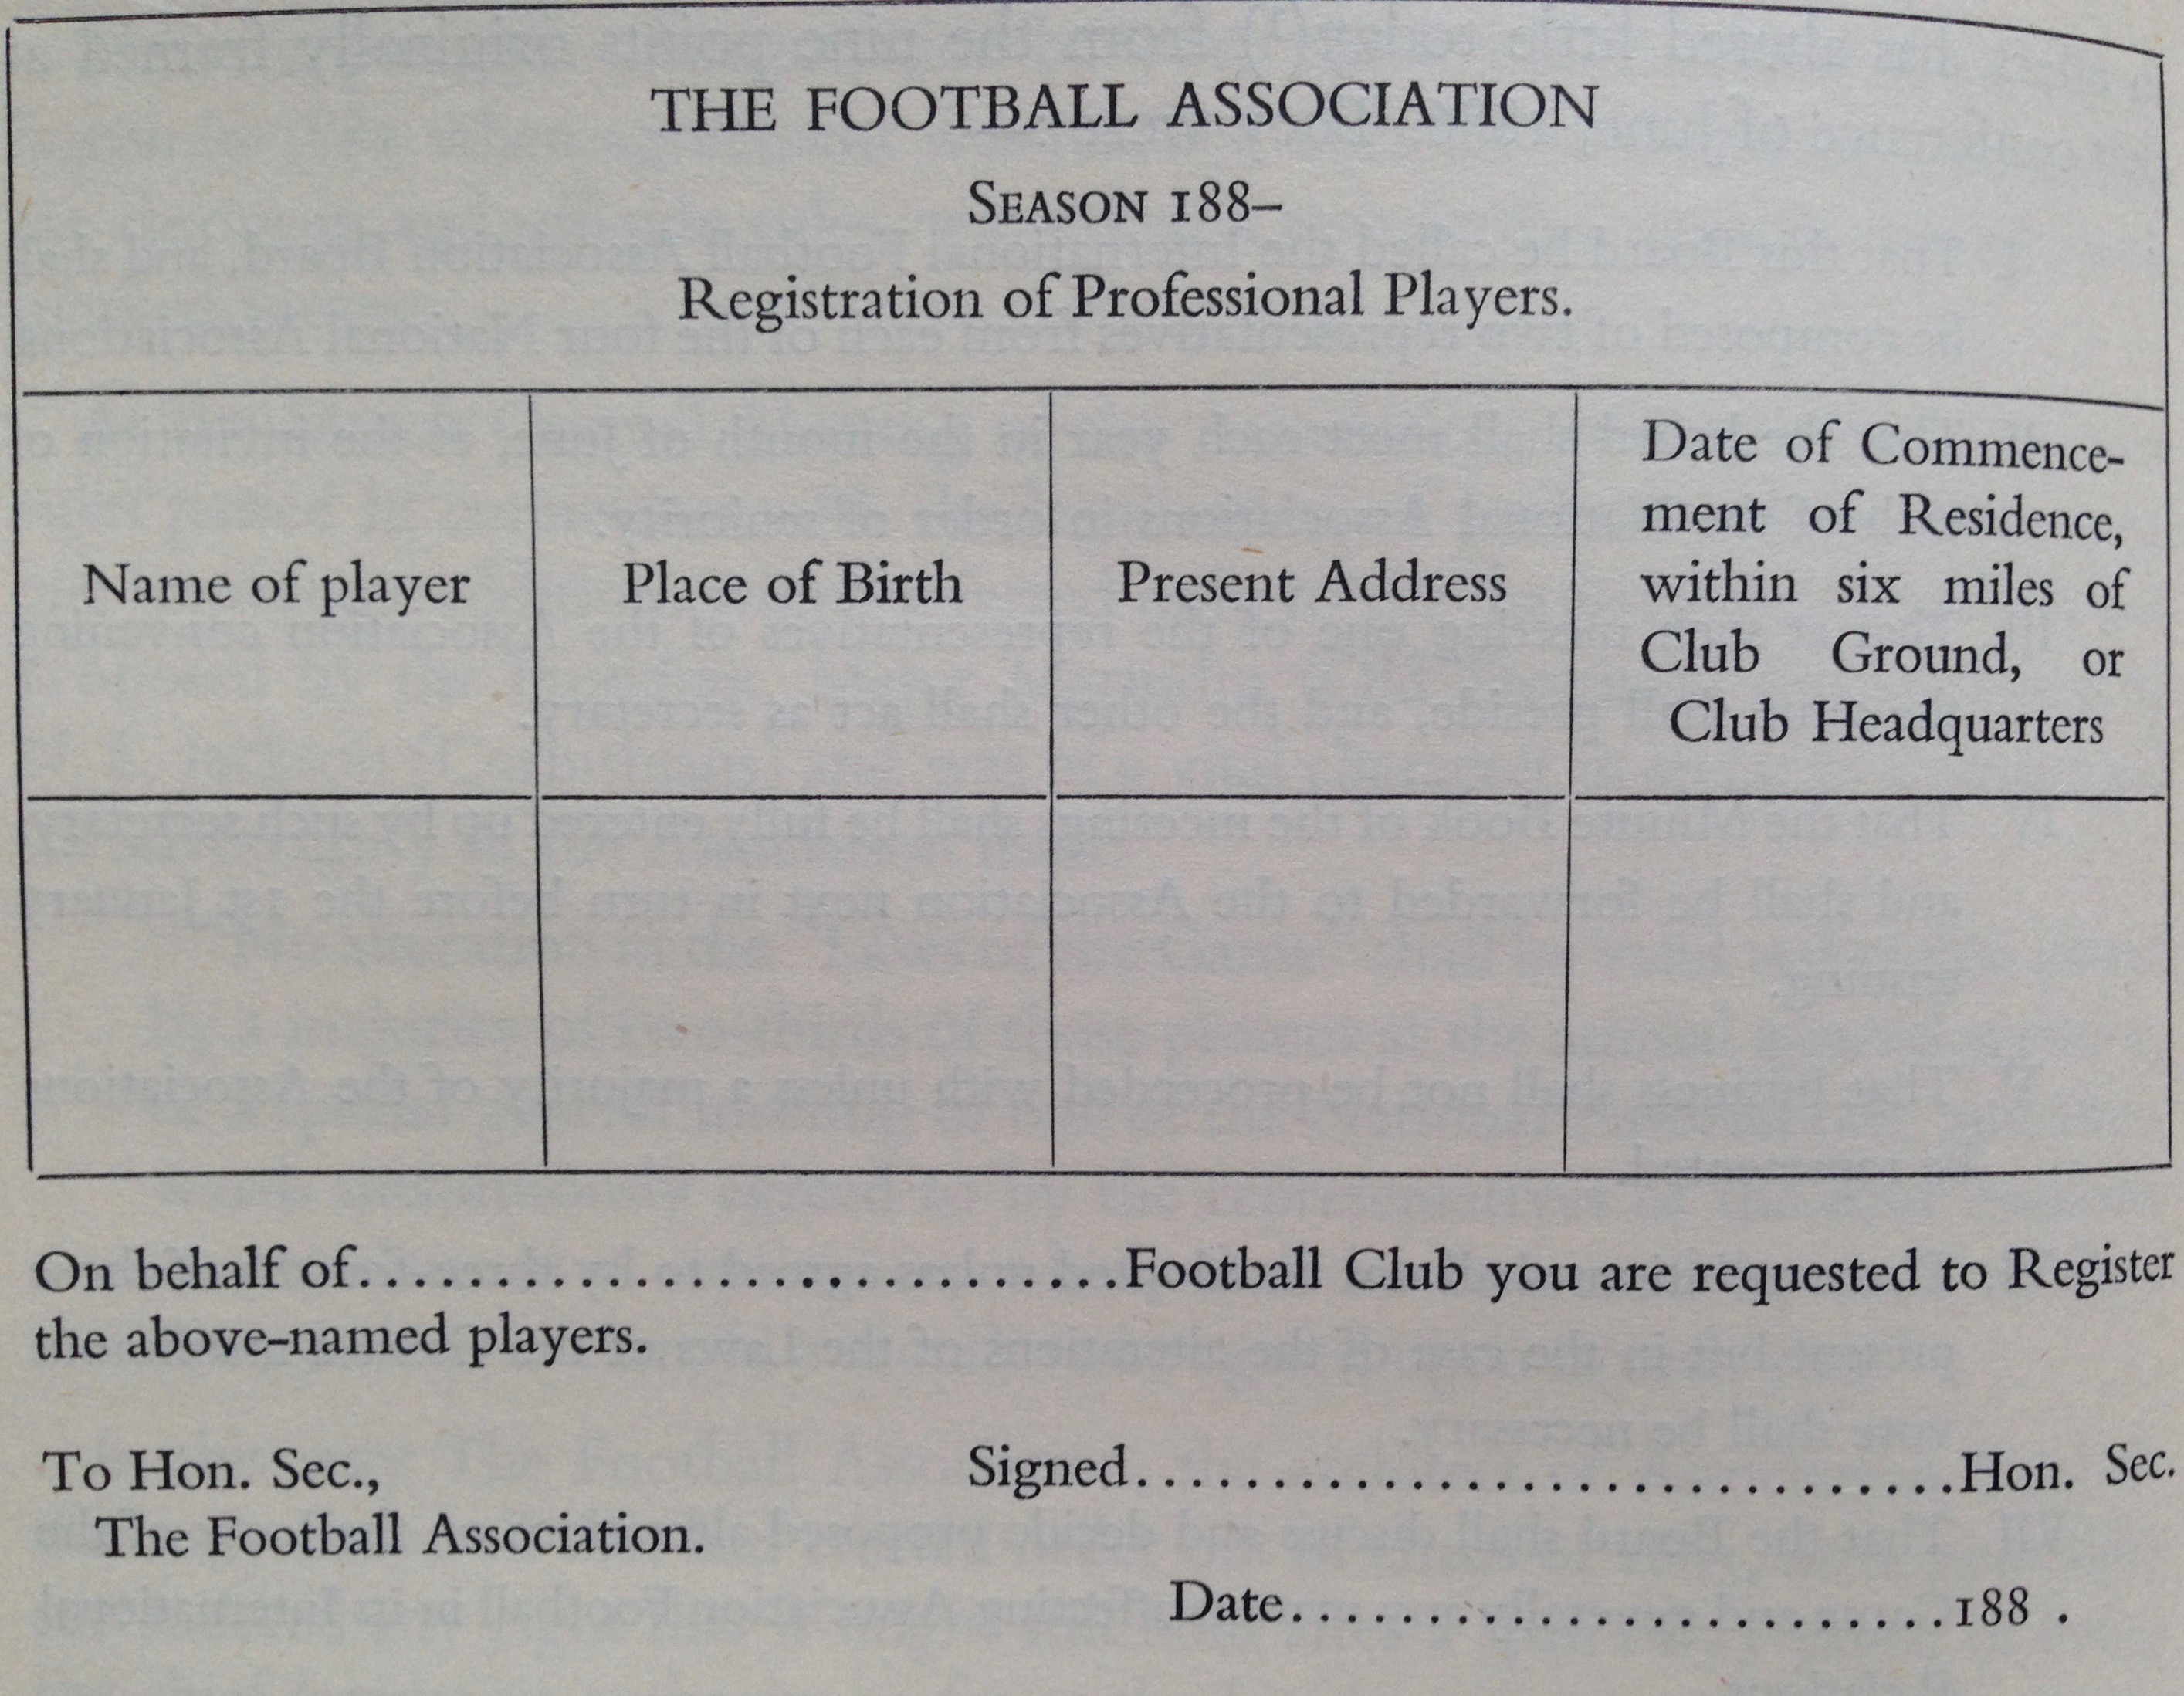 Registration of a Professional player